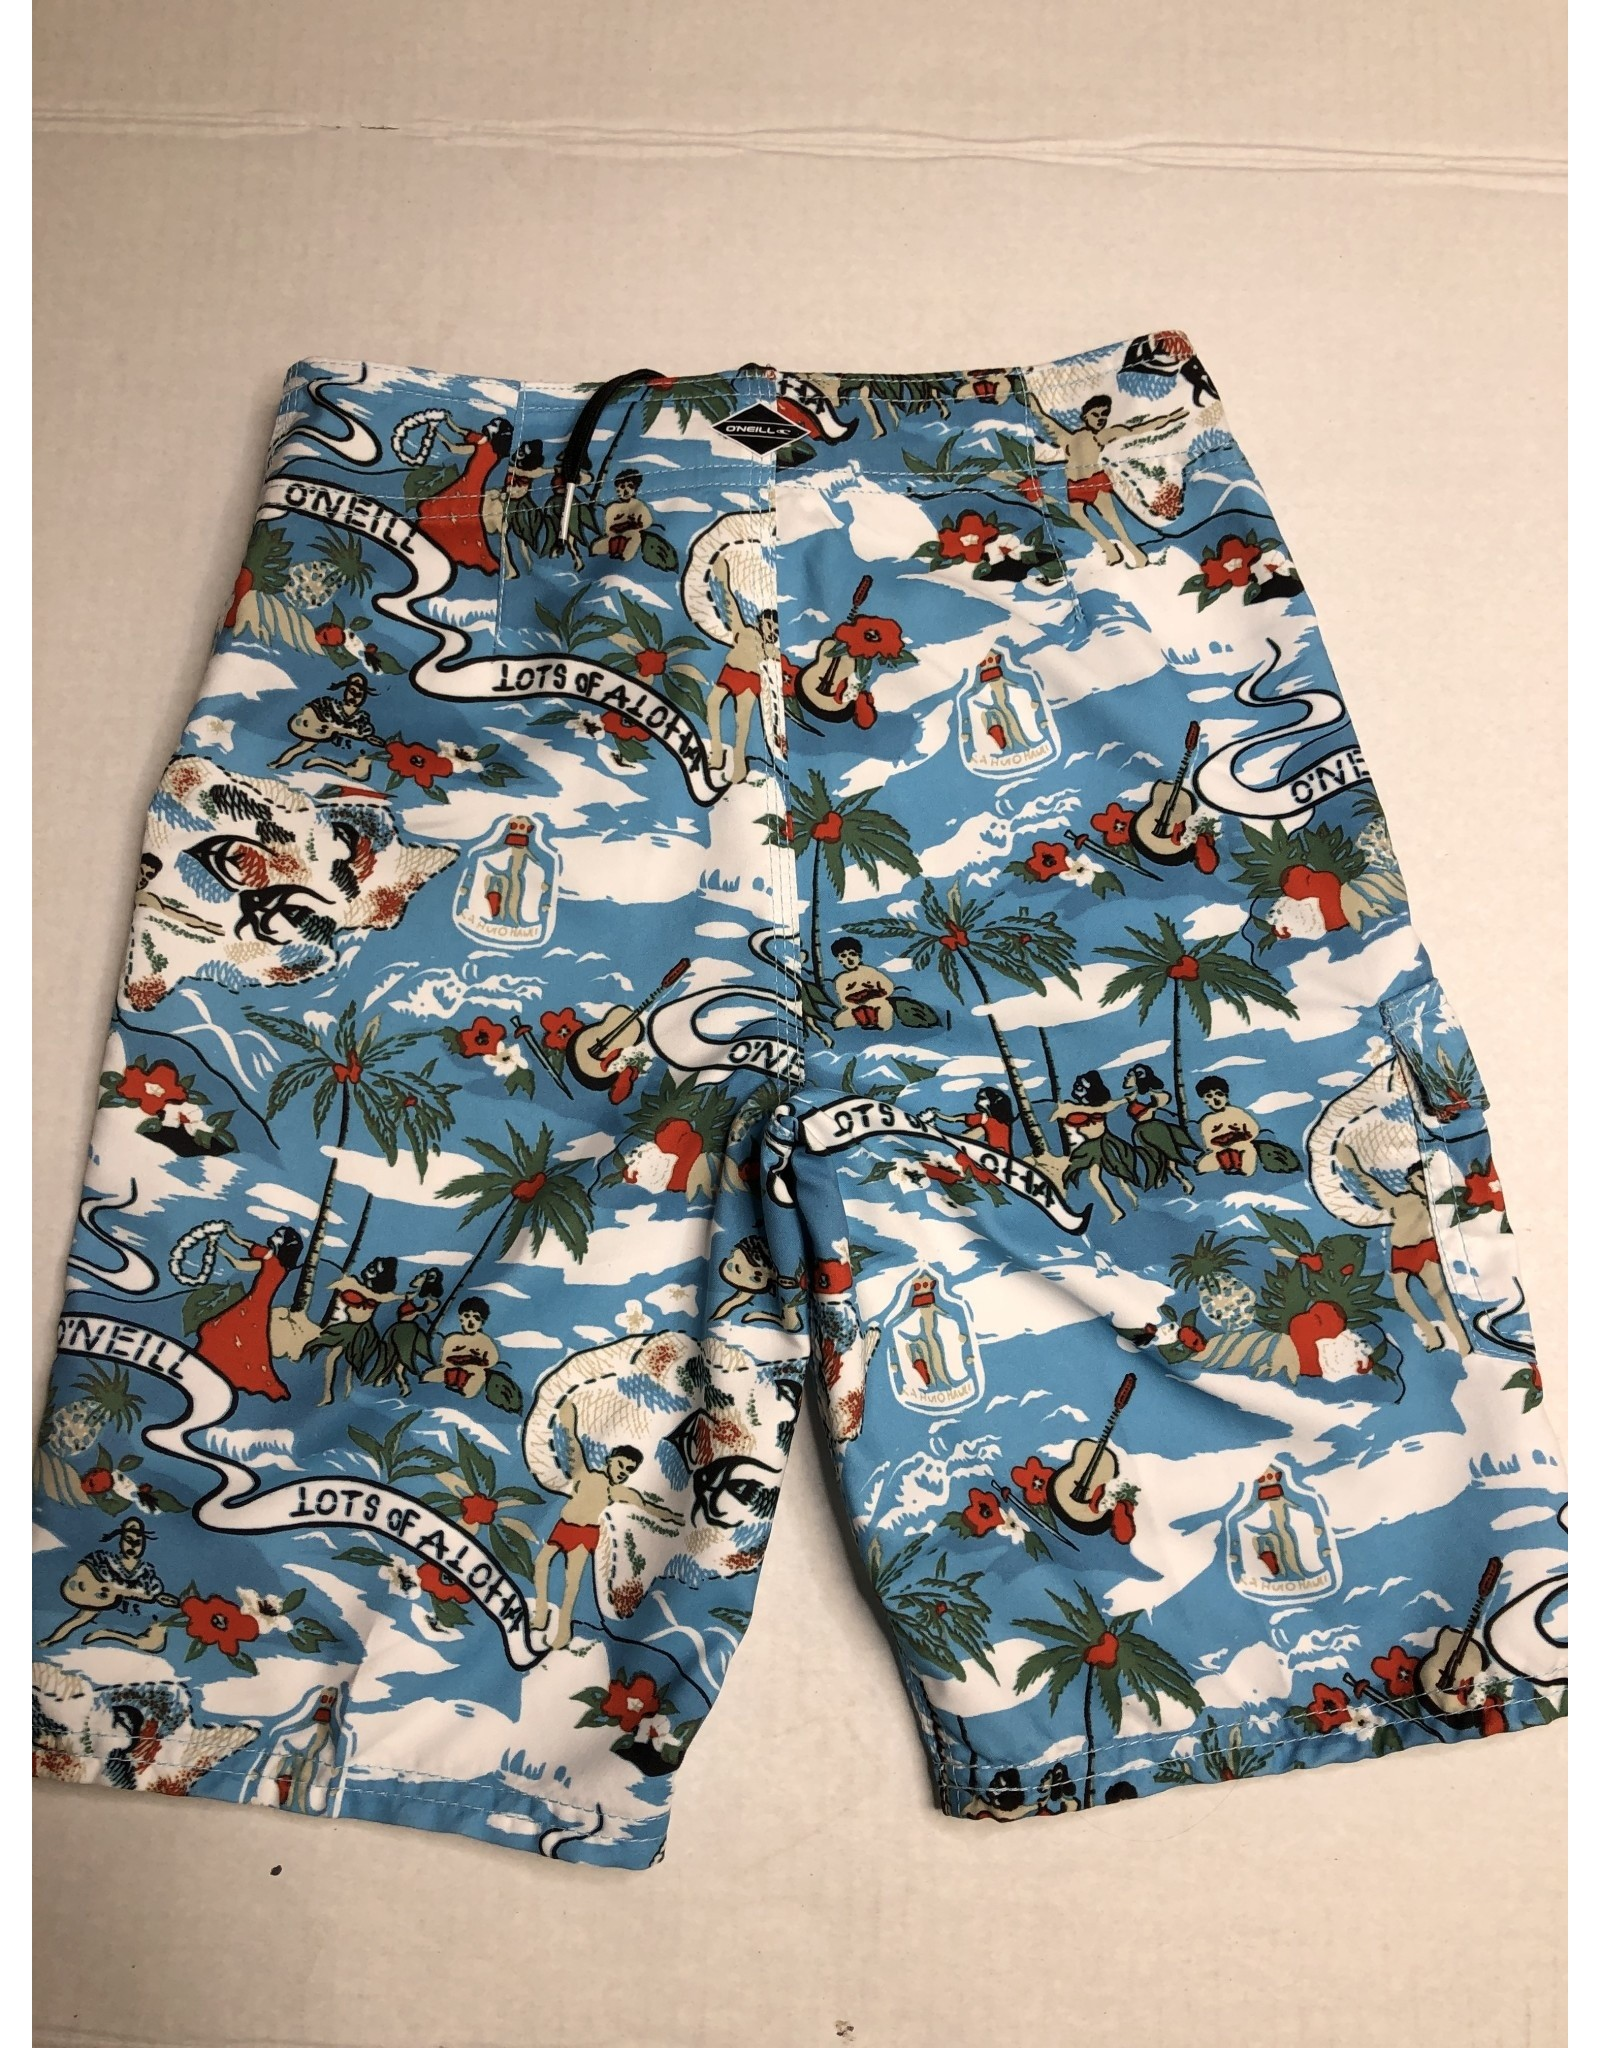 O'Neill Sportswear Hawaiian Swim Trunks